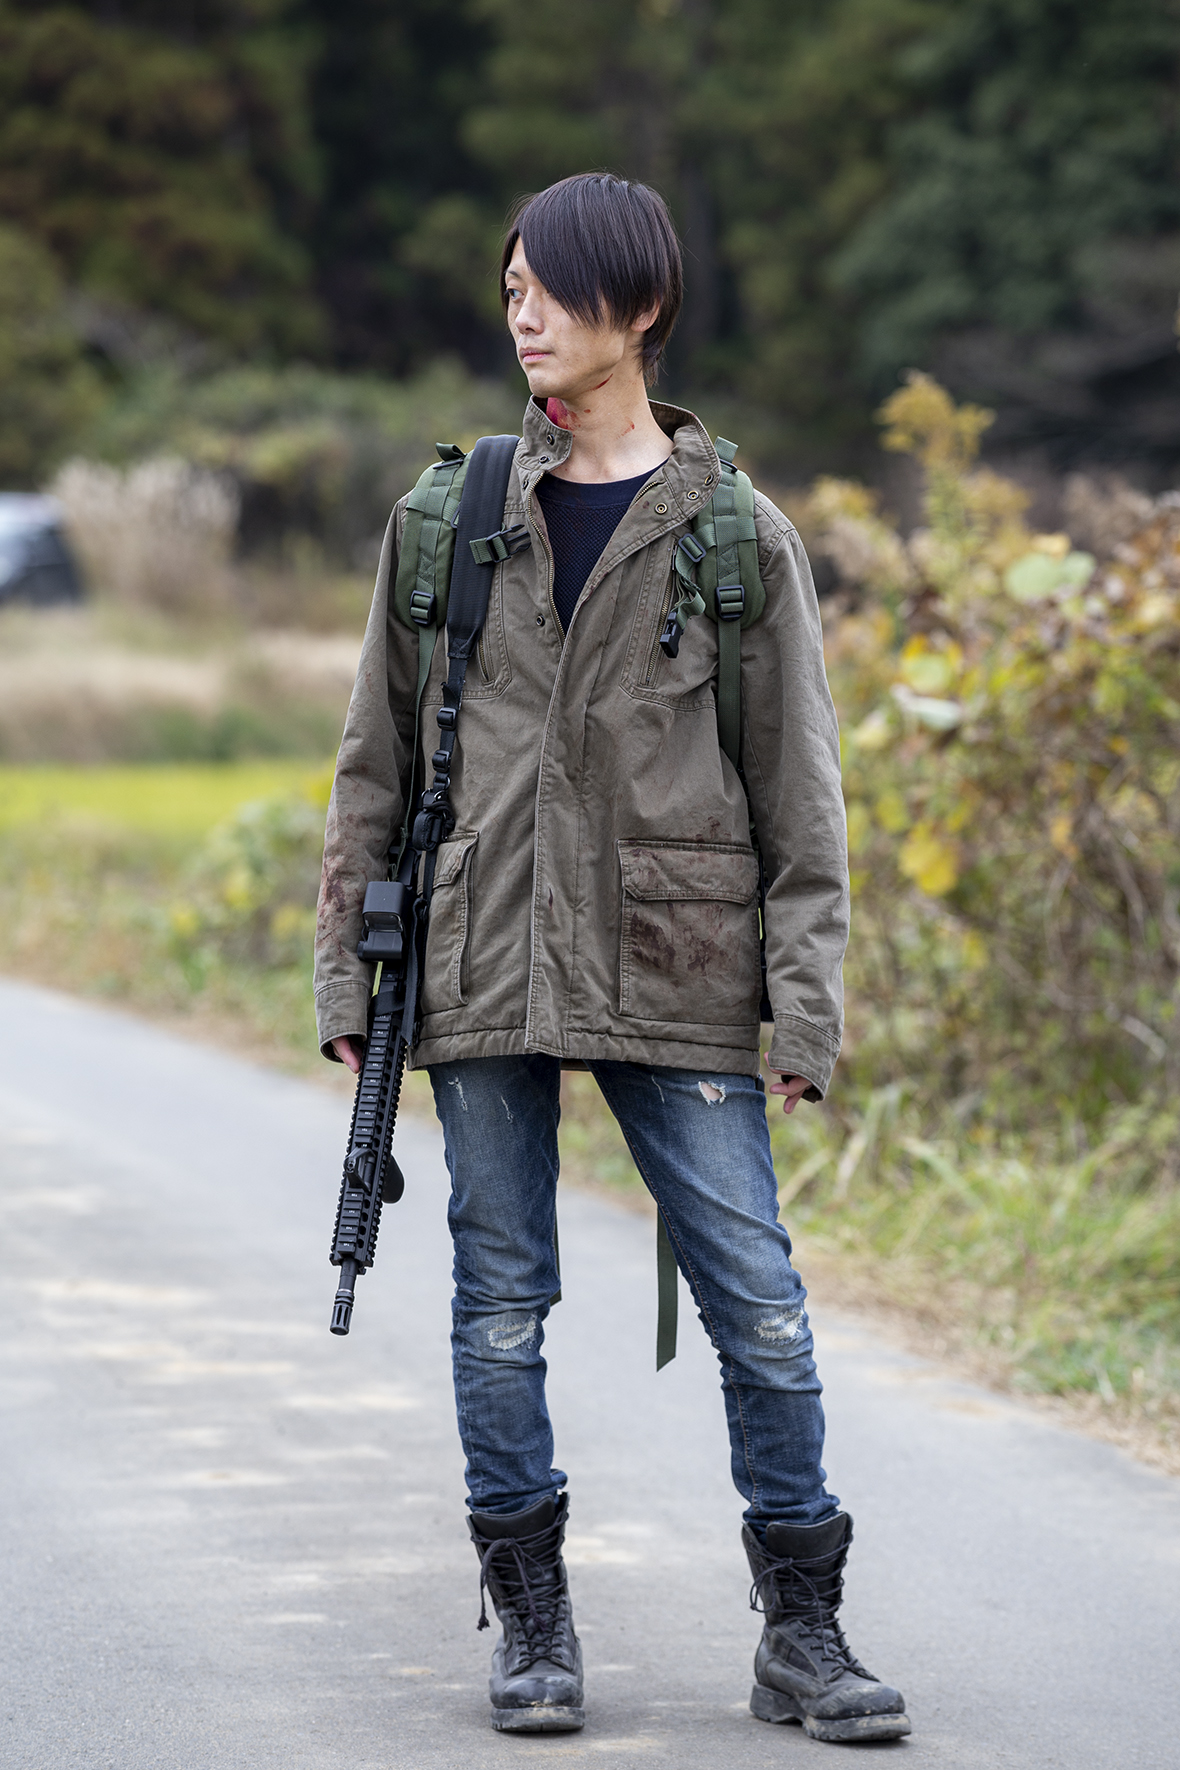 sg_fashion_snap_ZE1129-06-The Walking Dead-00